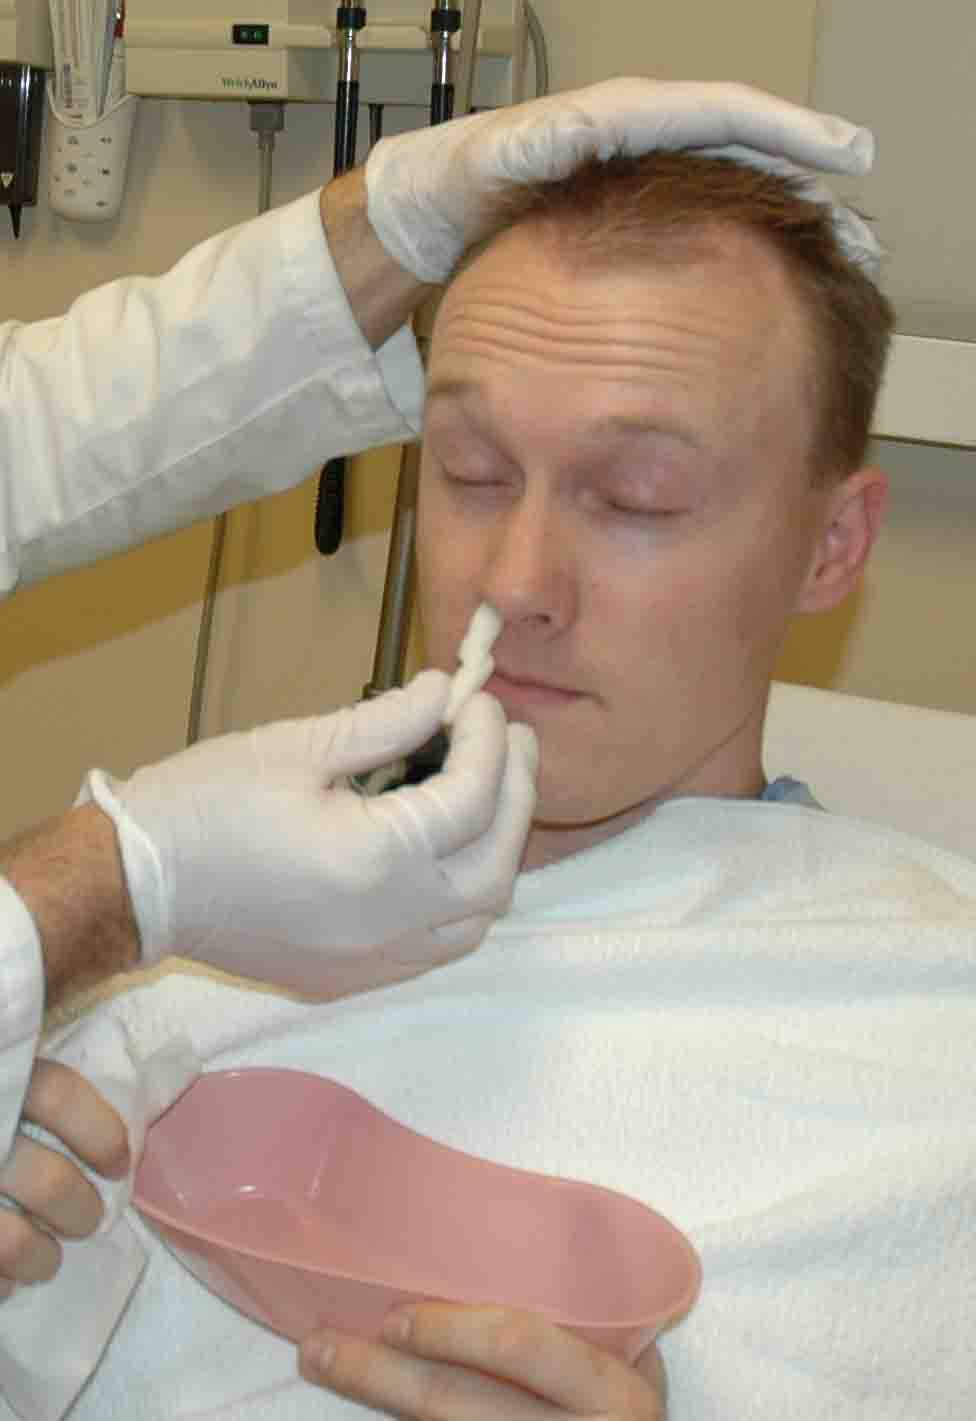 Inserting an oxymetzoline soaked cotton ball into the bleeding nostril